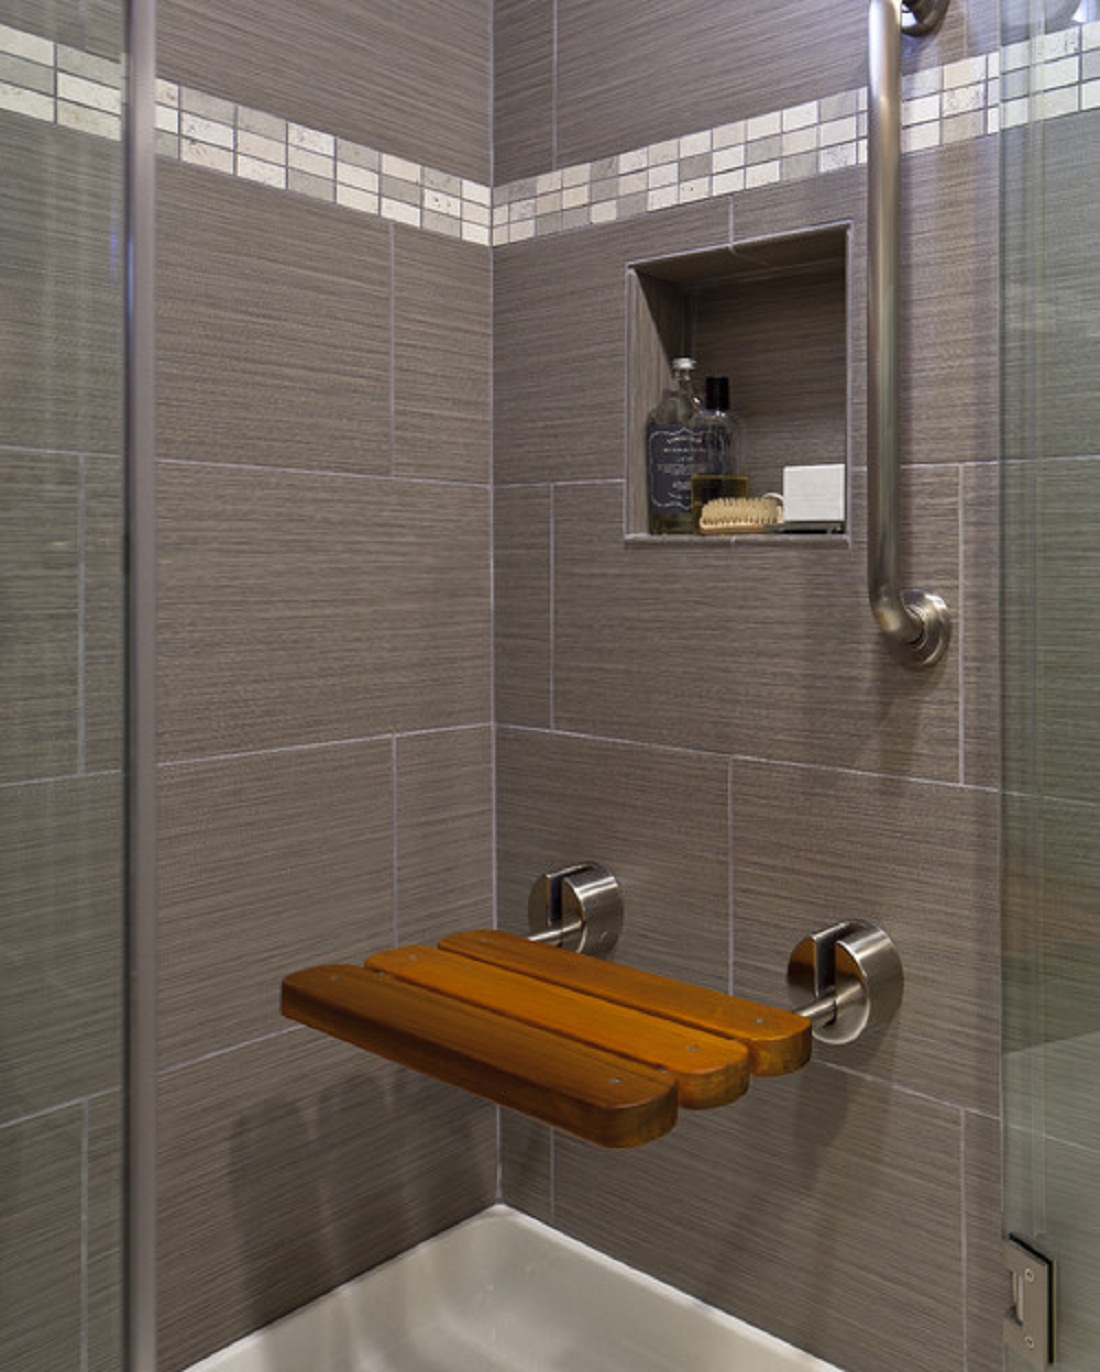 Bathroom Tile: 50 Magnificent Ultra Modern Bathroom Tile Ideas, Photos